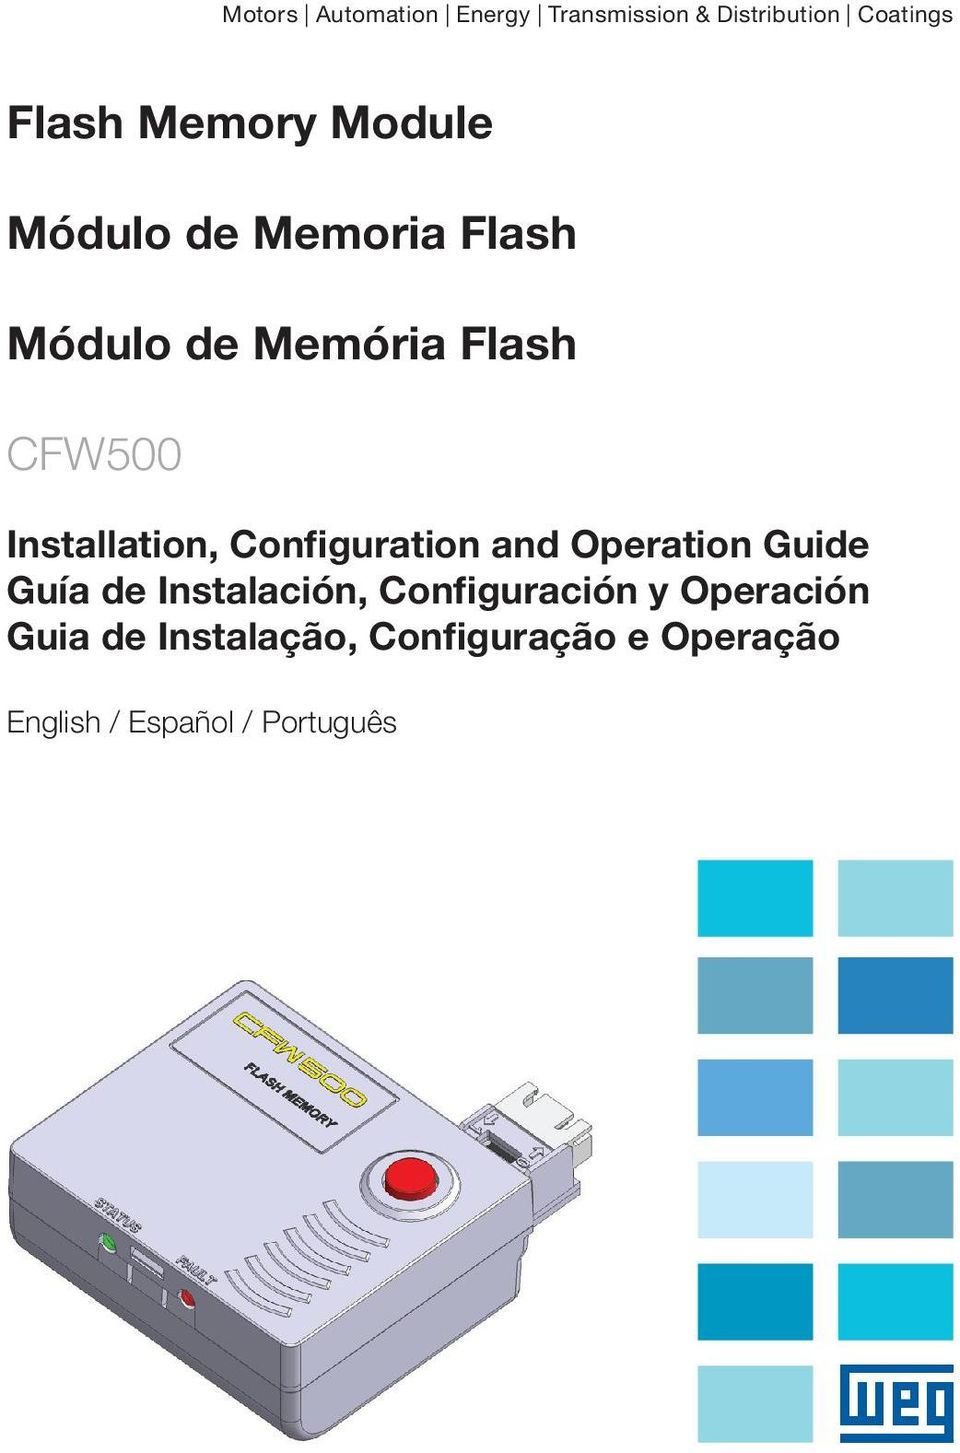 Configuration and Operation Guide Guía de Instalación, Configuración y